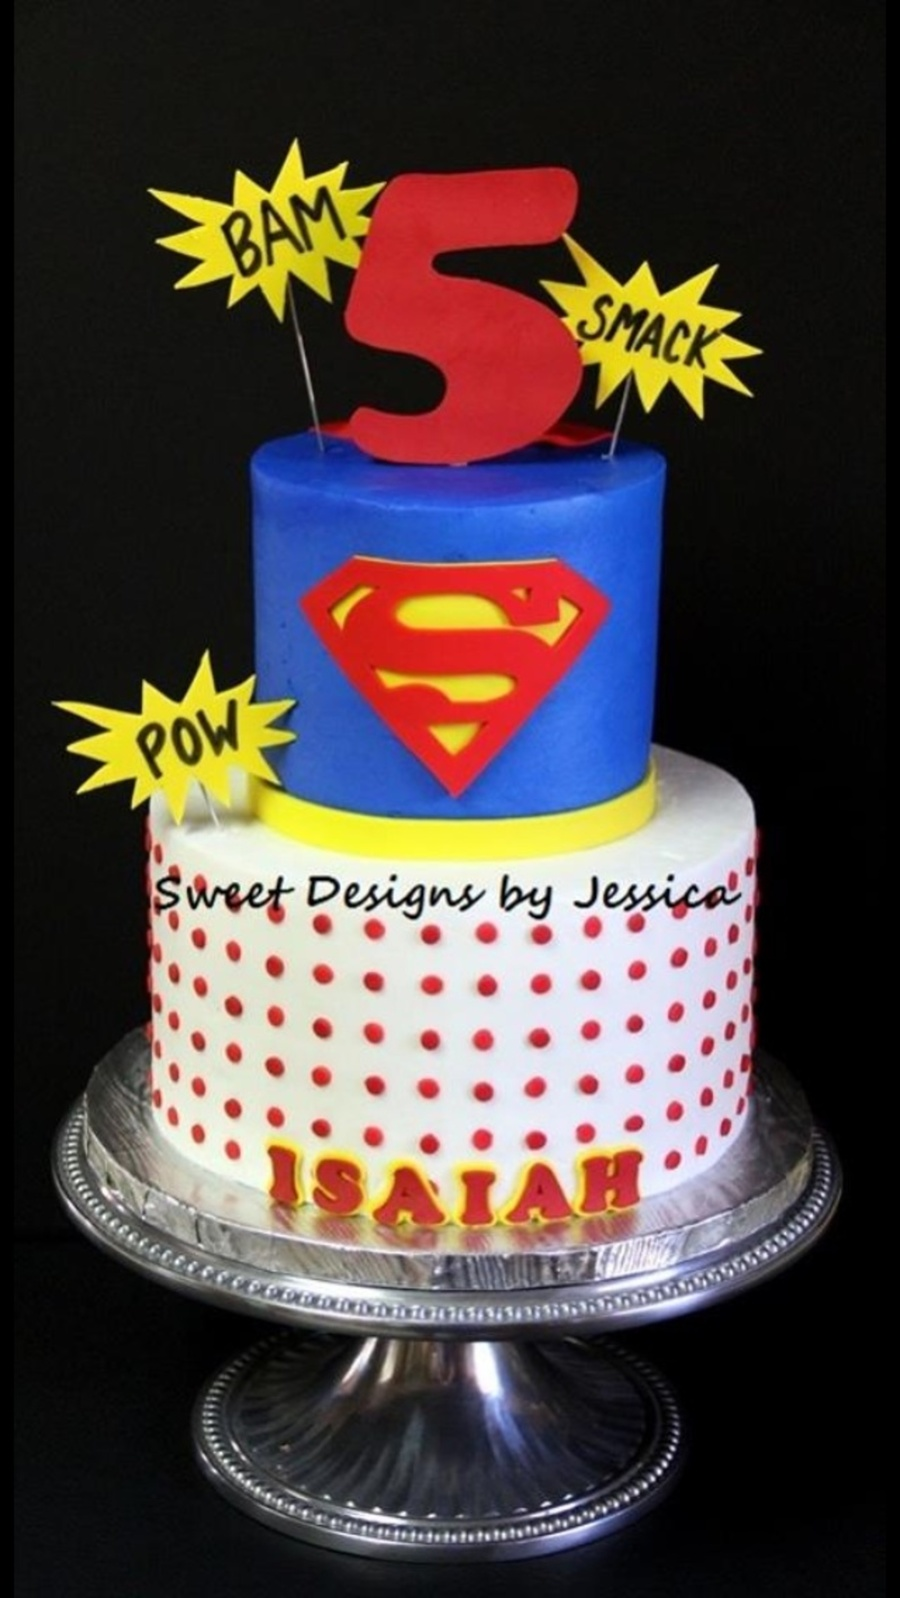 Isaiah's 5Th on Cake Central